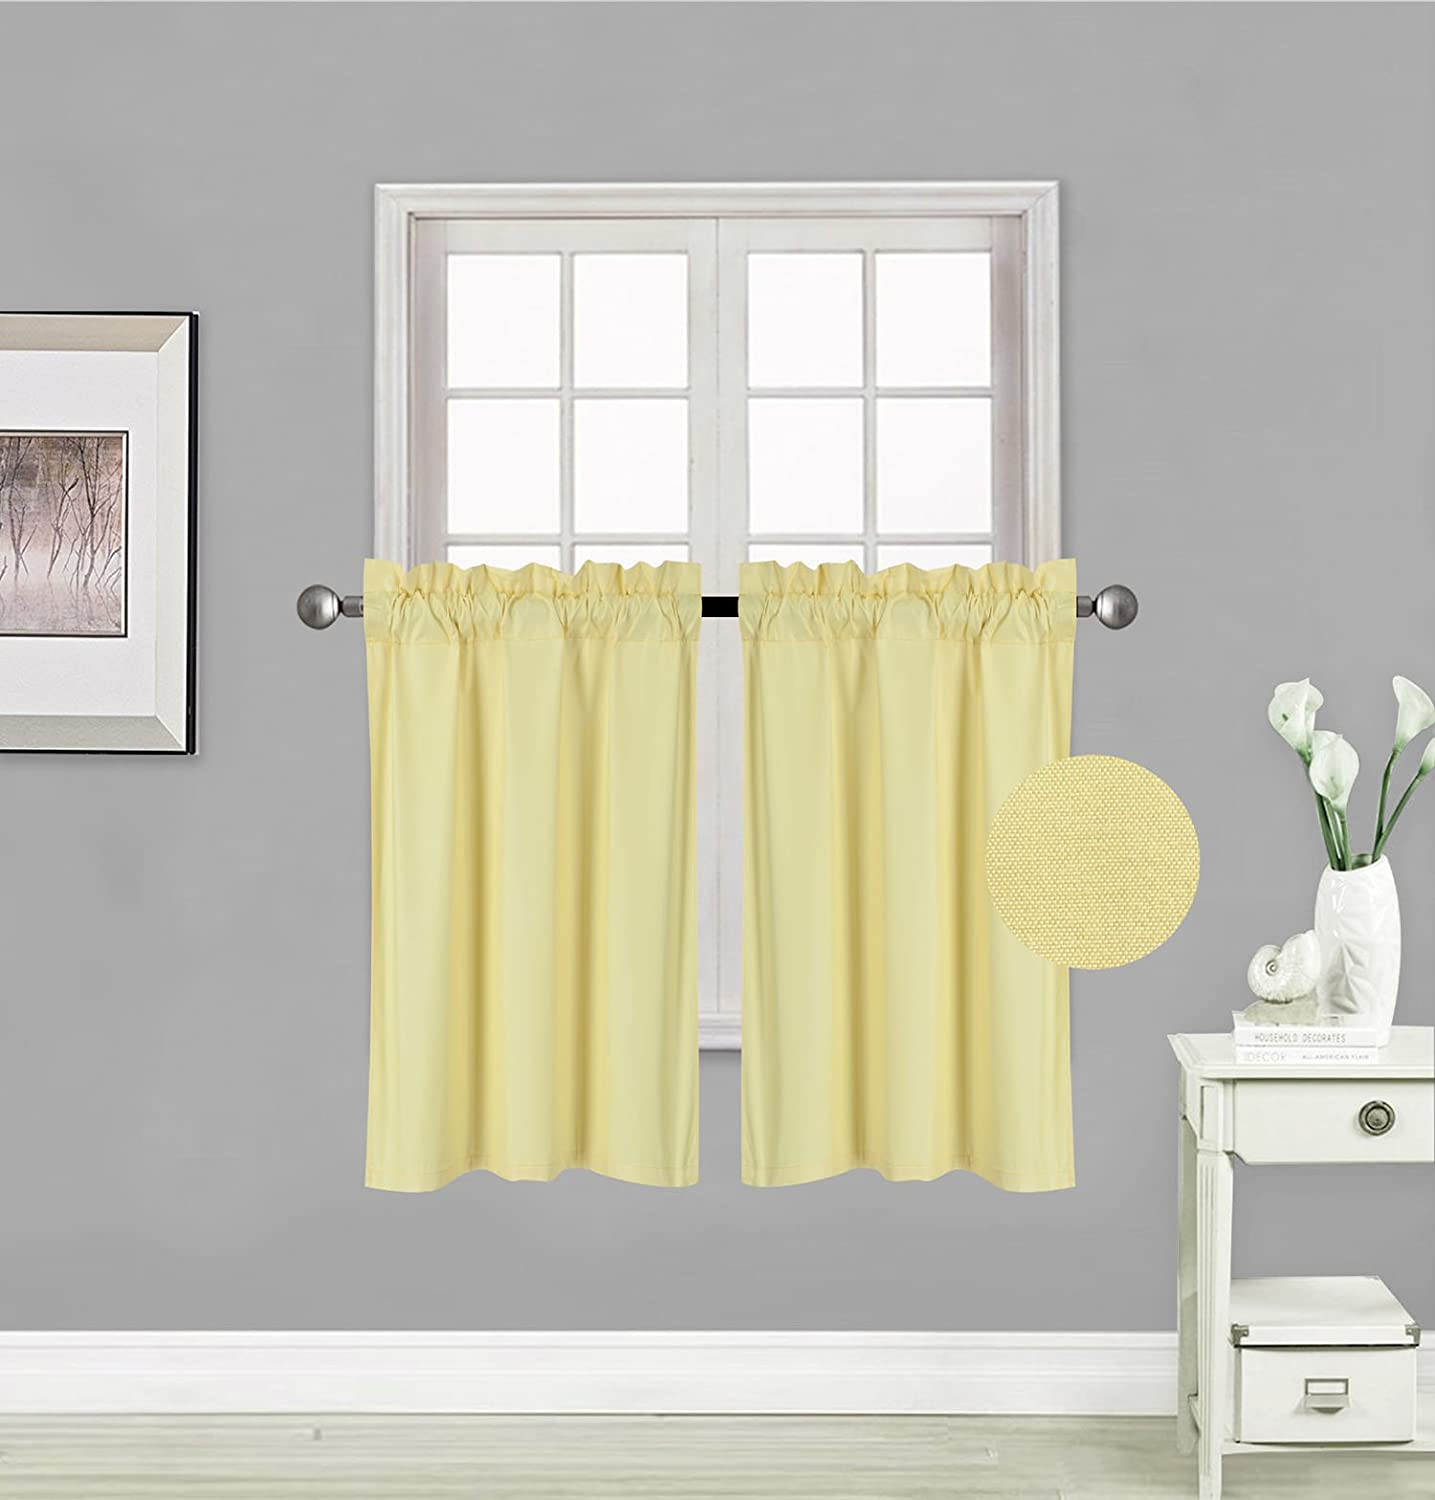 """Elegant Home 2 Panels Tiers Small Window Treatment Curtain Insulated Blackout Drape Short Panel 30""""W X 36""""L Each for Kitchen Bathroom or ANY Small Window # R5 (Yellow)"""